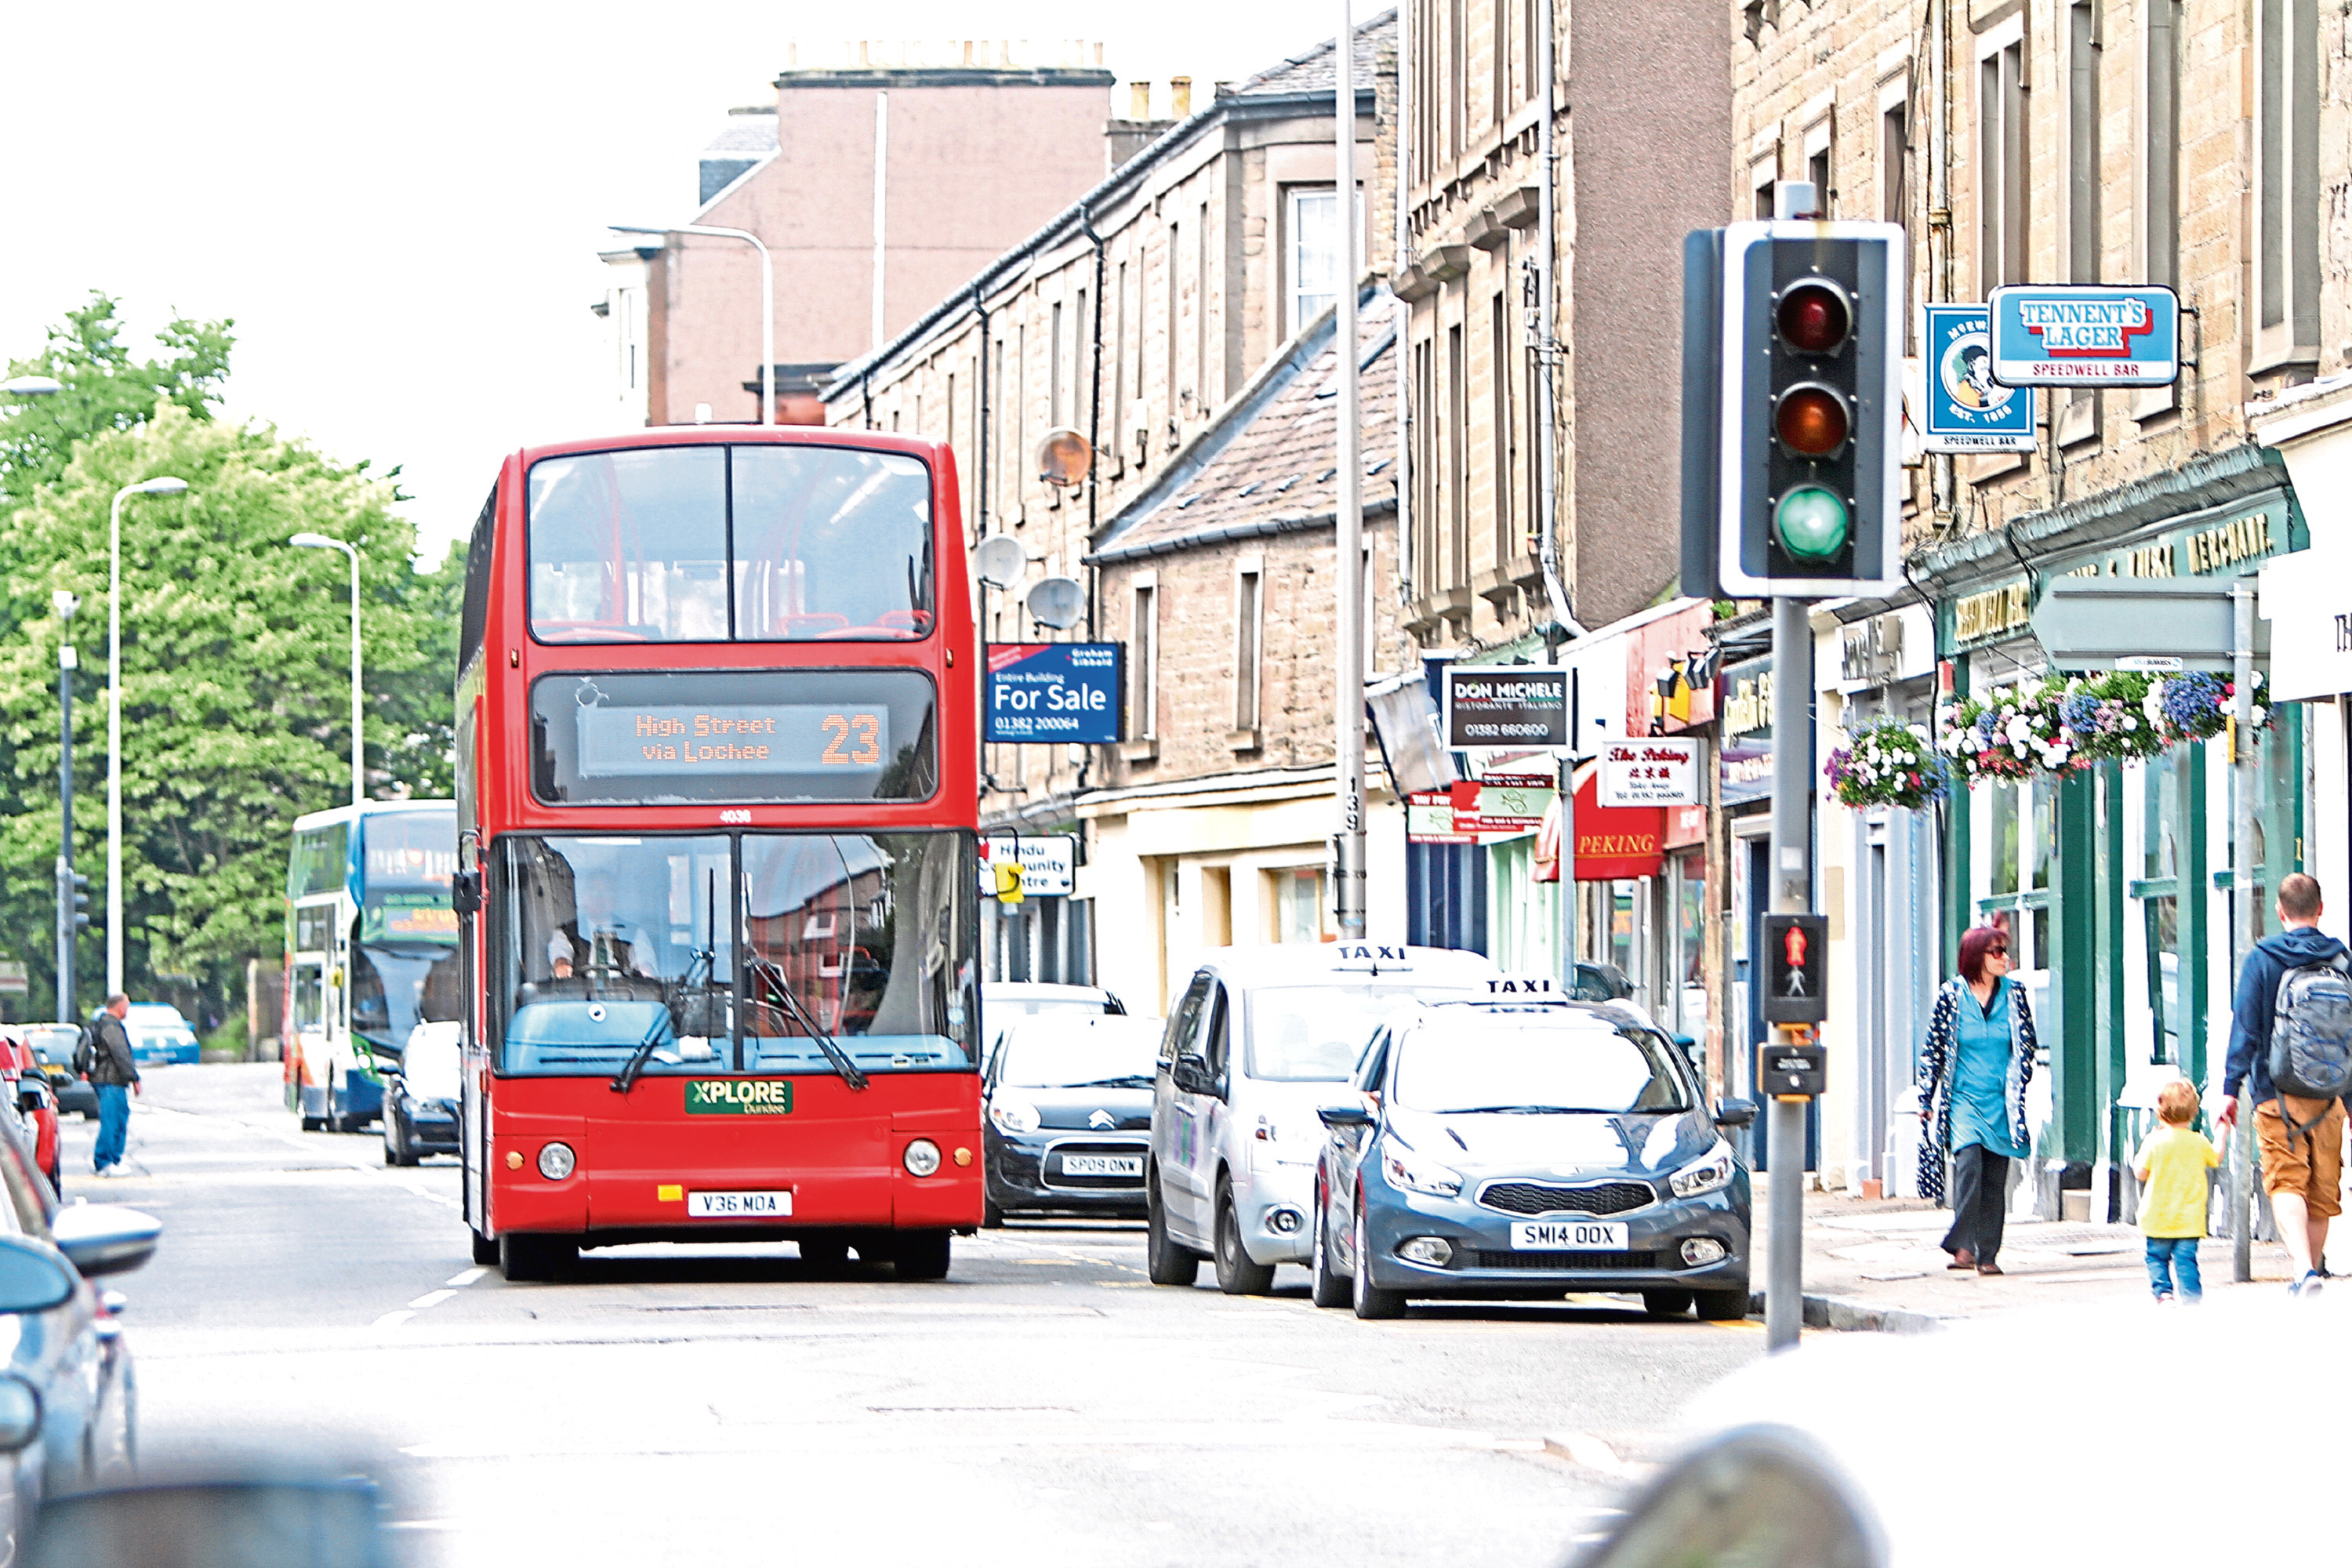 Xplore Dundee has said that its city bus service has returned to normal.